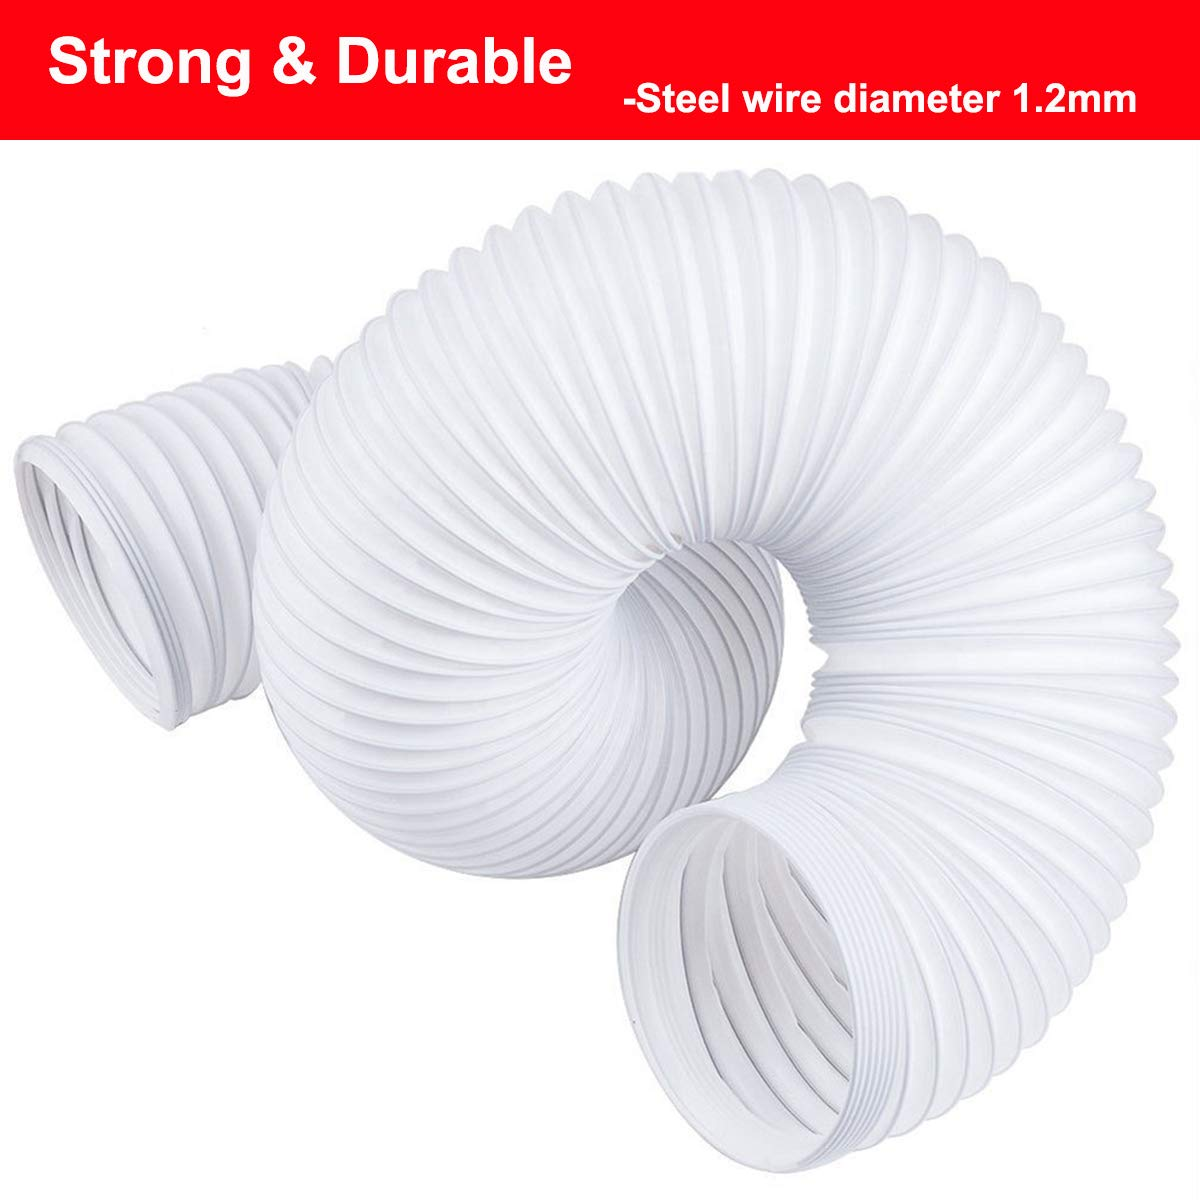 Welsoon 5.9 inch Diameter Extra Long Portable Air Conditioner Exhaust Hose 79 inch Length Counterclockwise Vent Hose 5.9inch Diameter//15CM